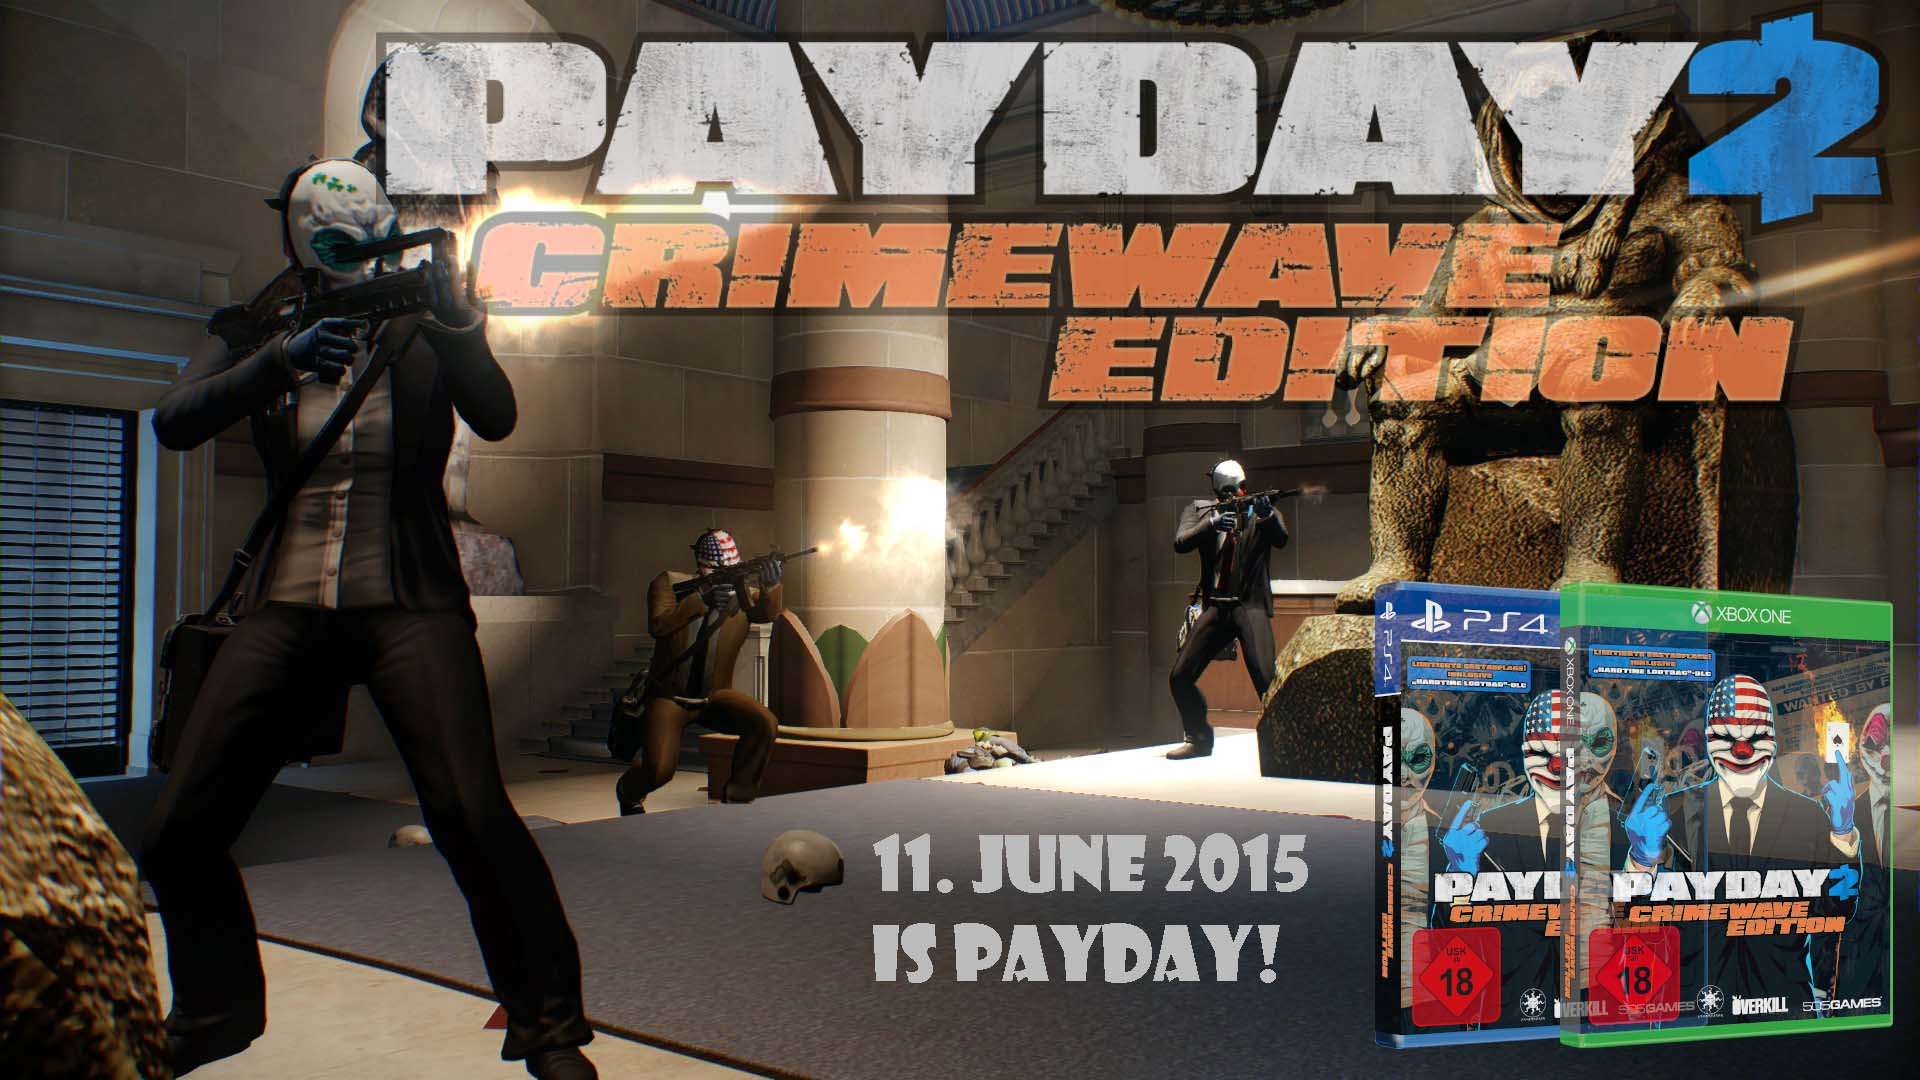 Payday 2 Event in München – Interview mit Almir Listo